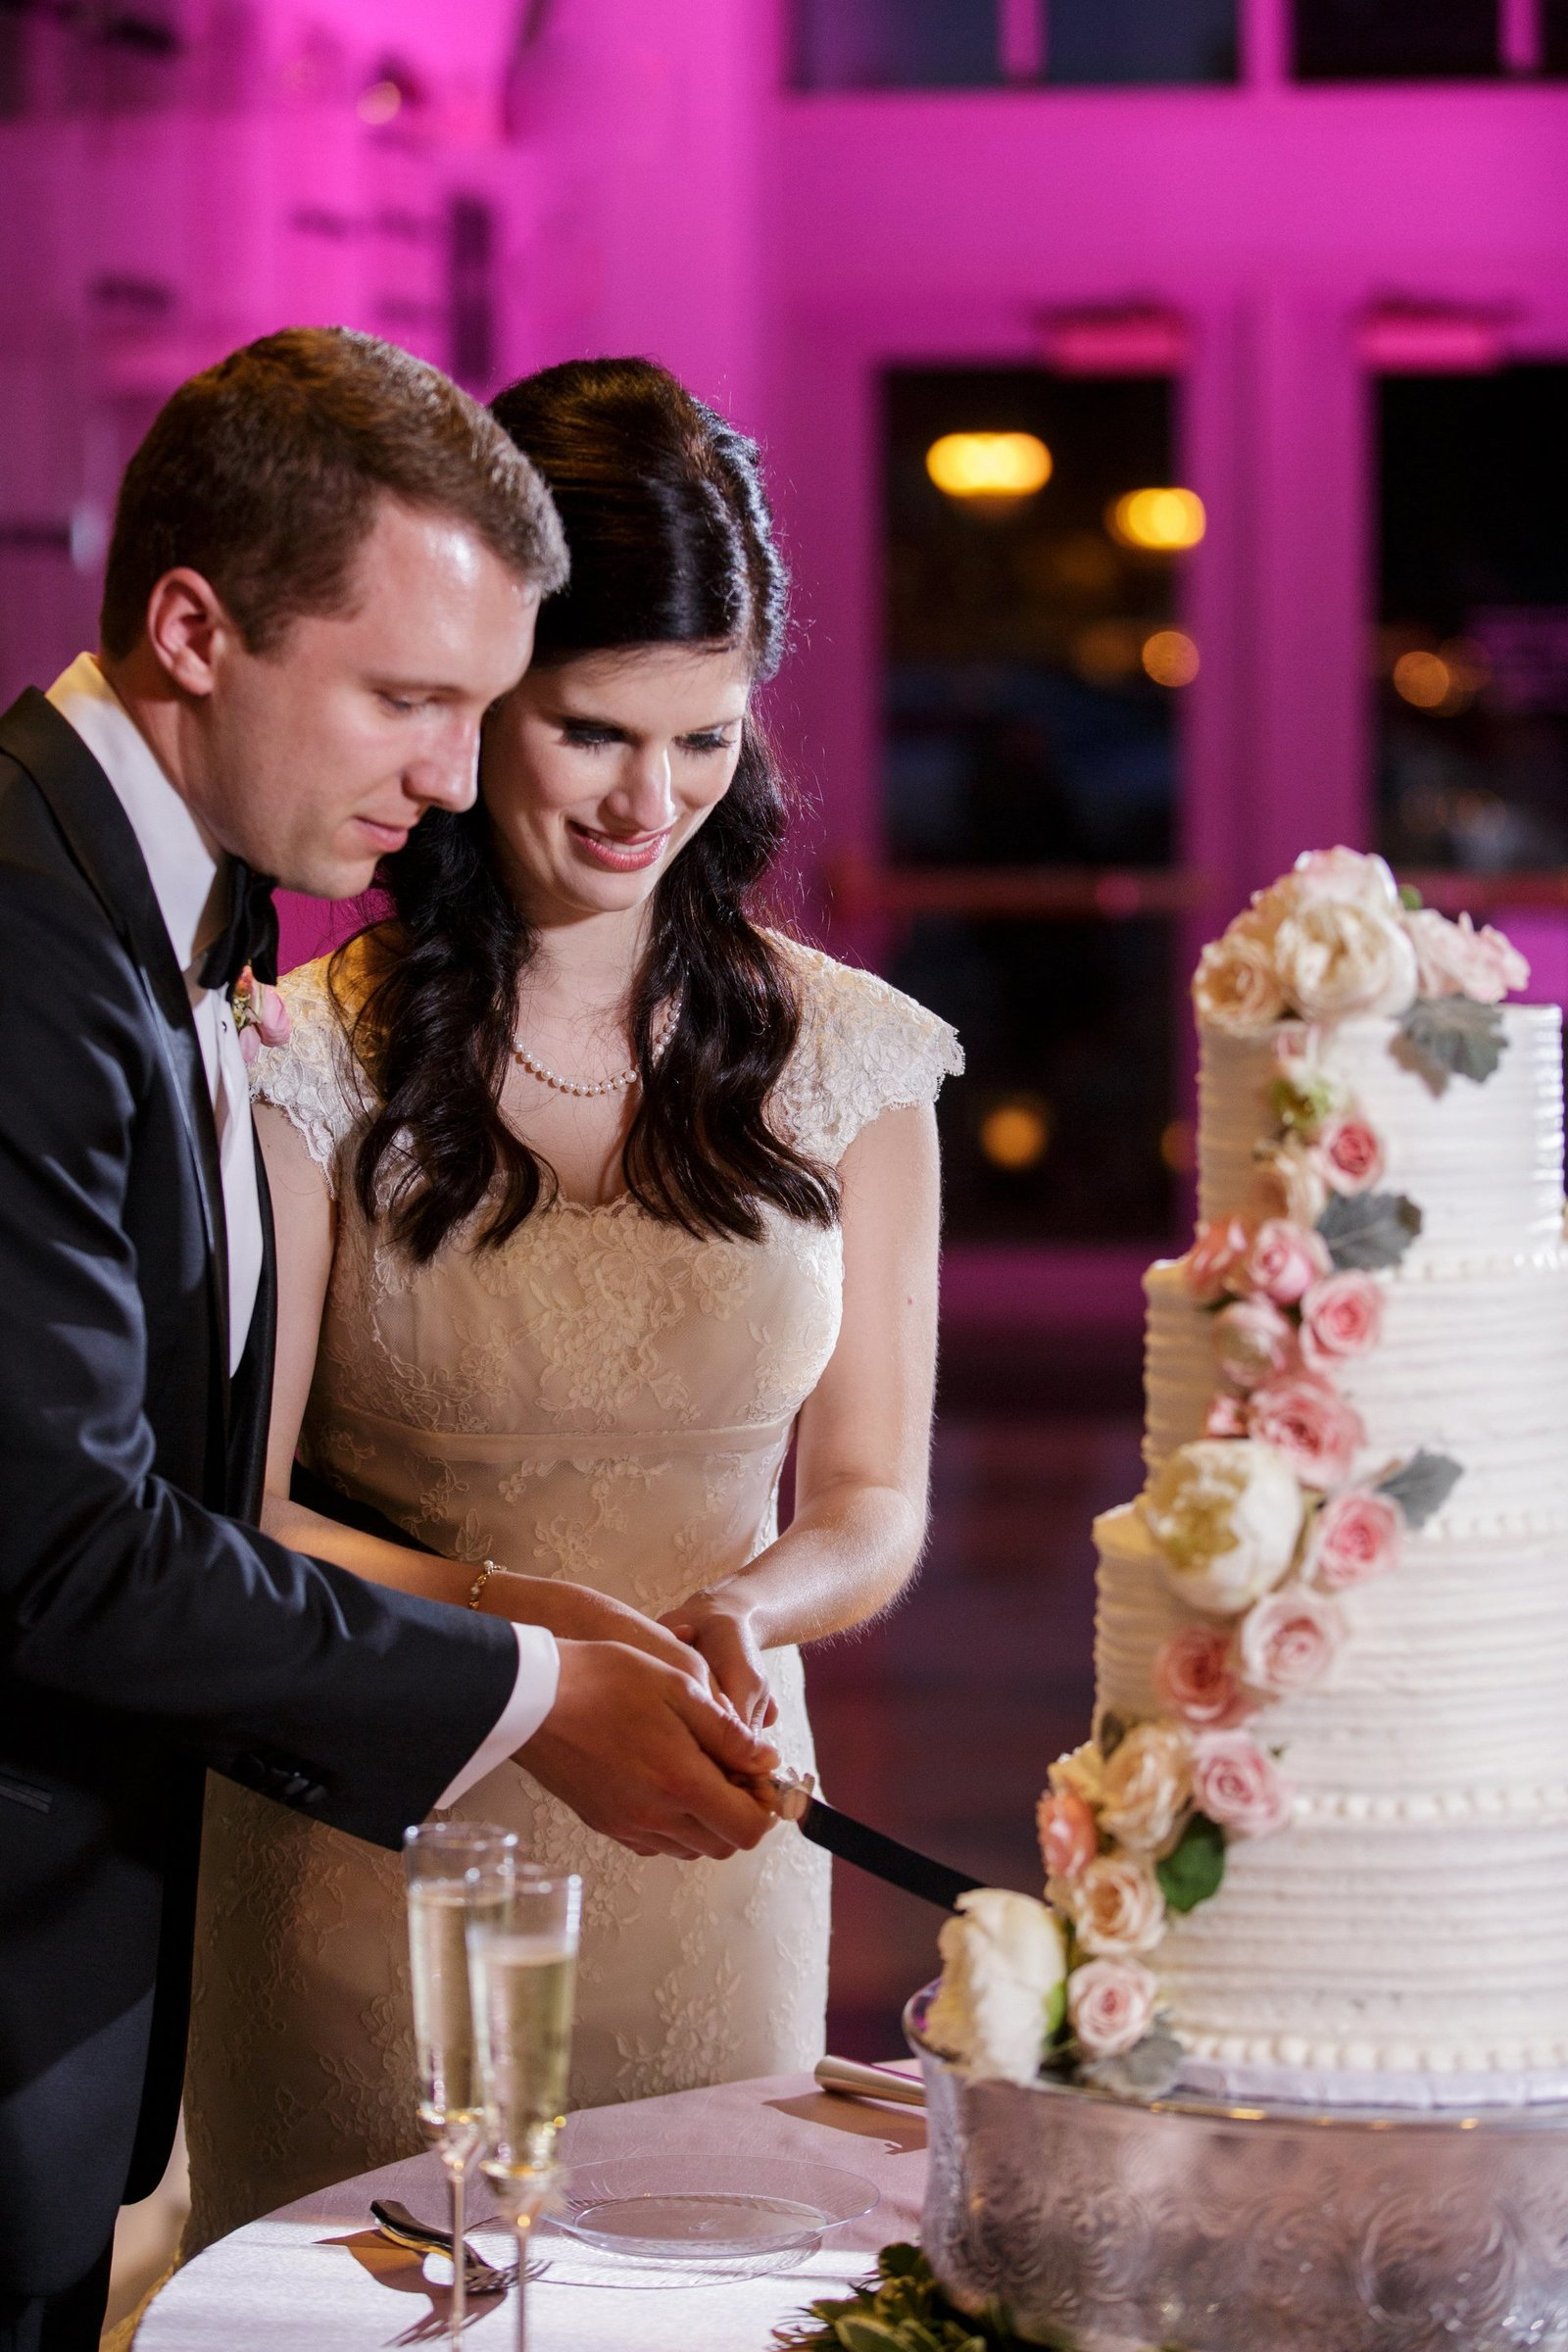 bride-groom-cutting-cake-on-wedding-day